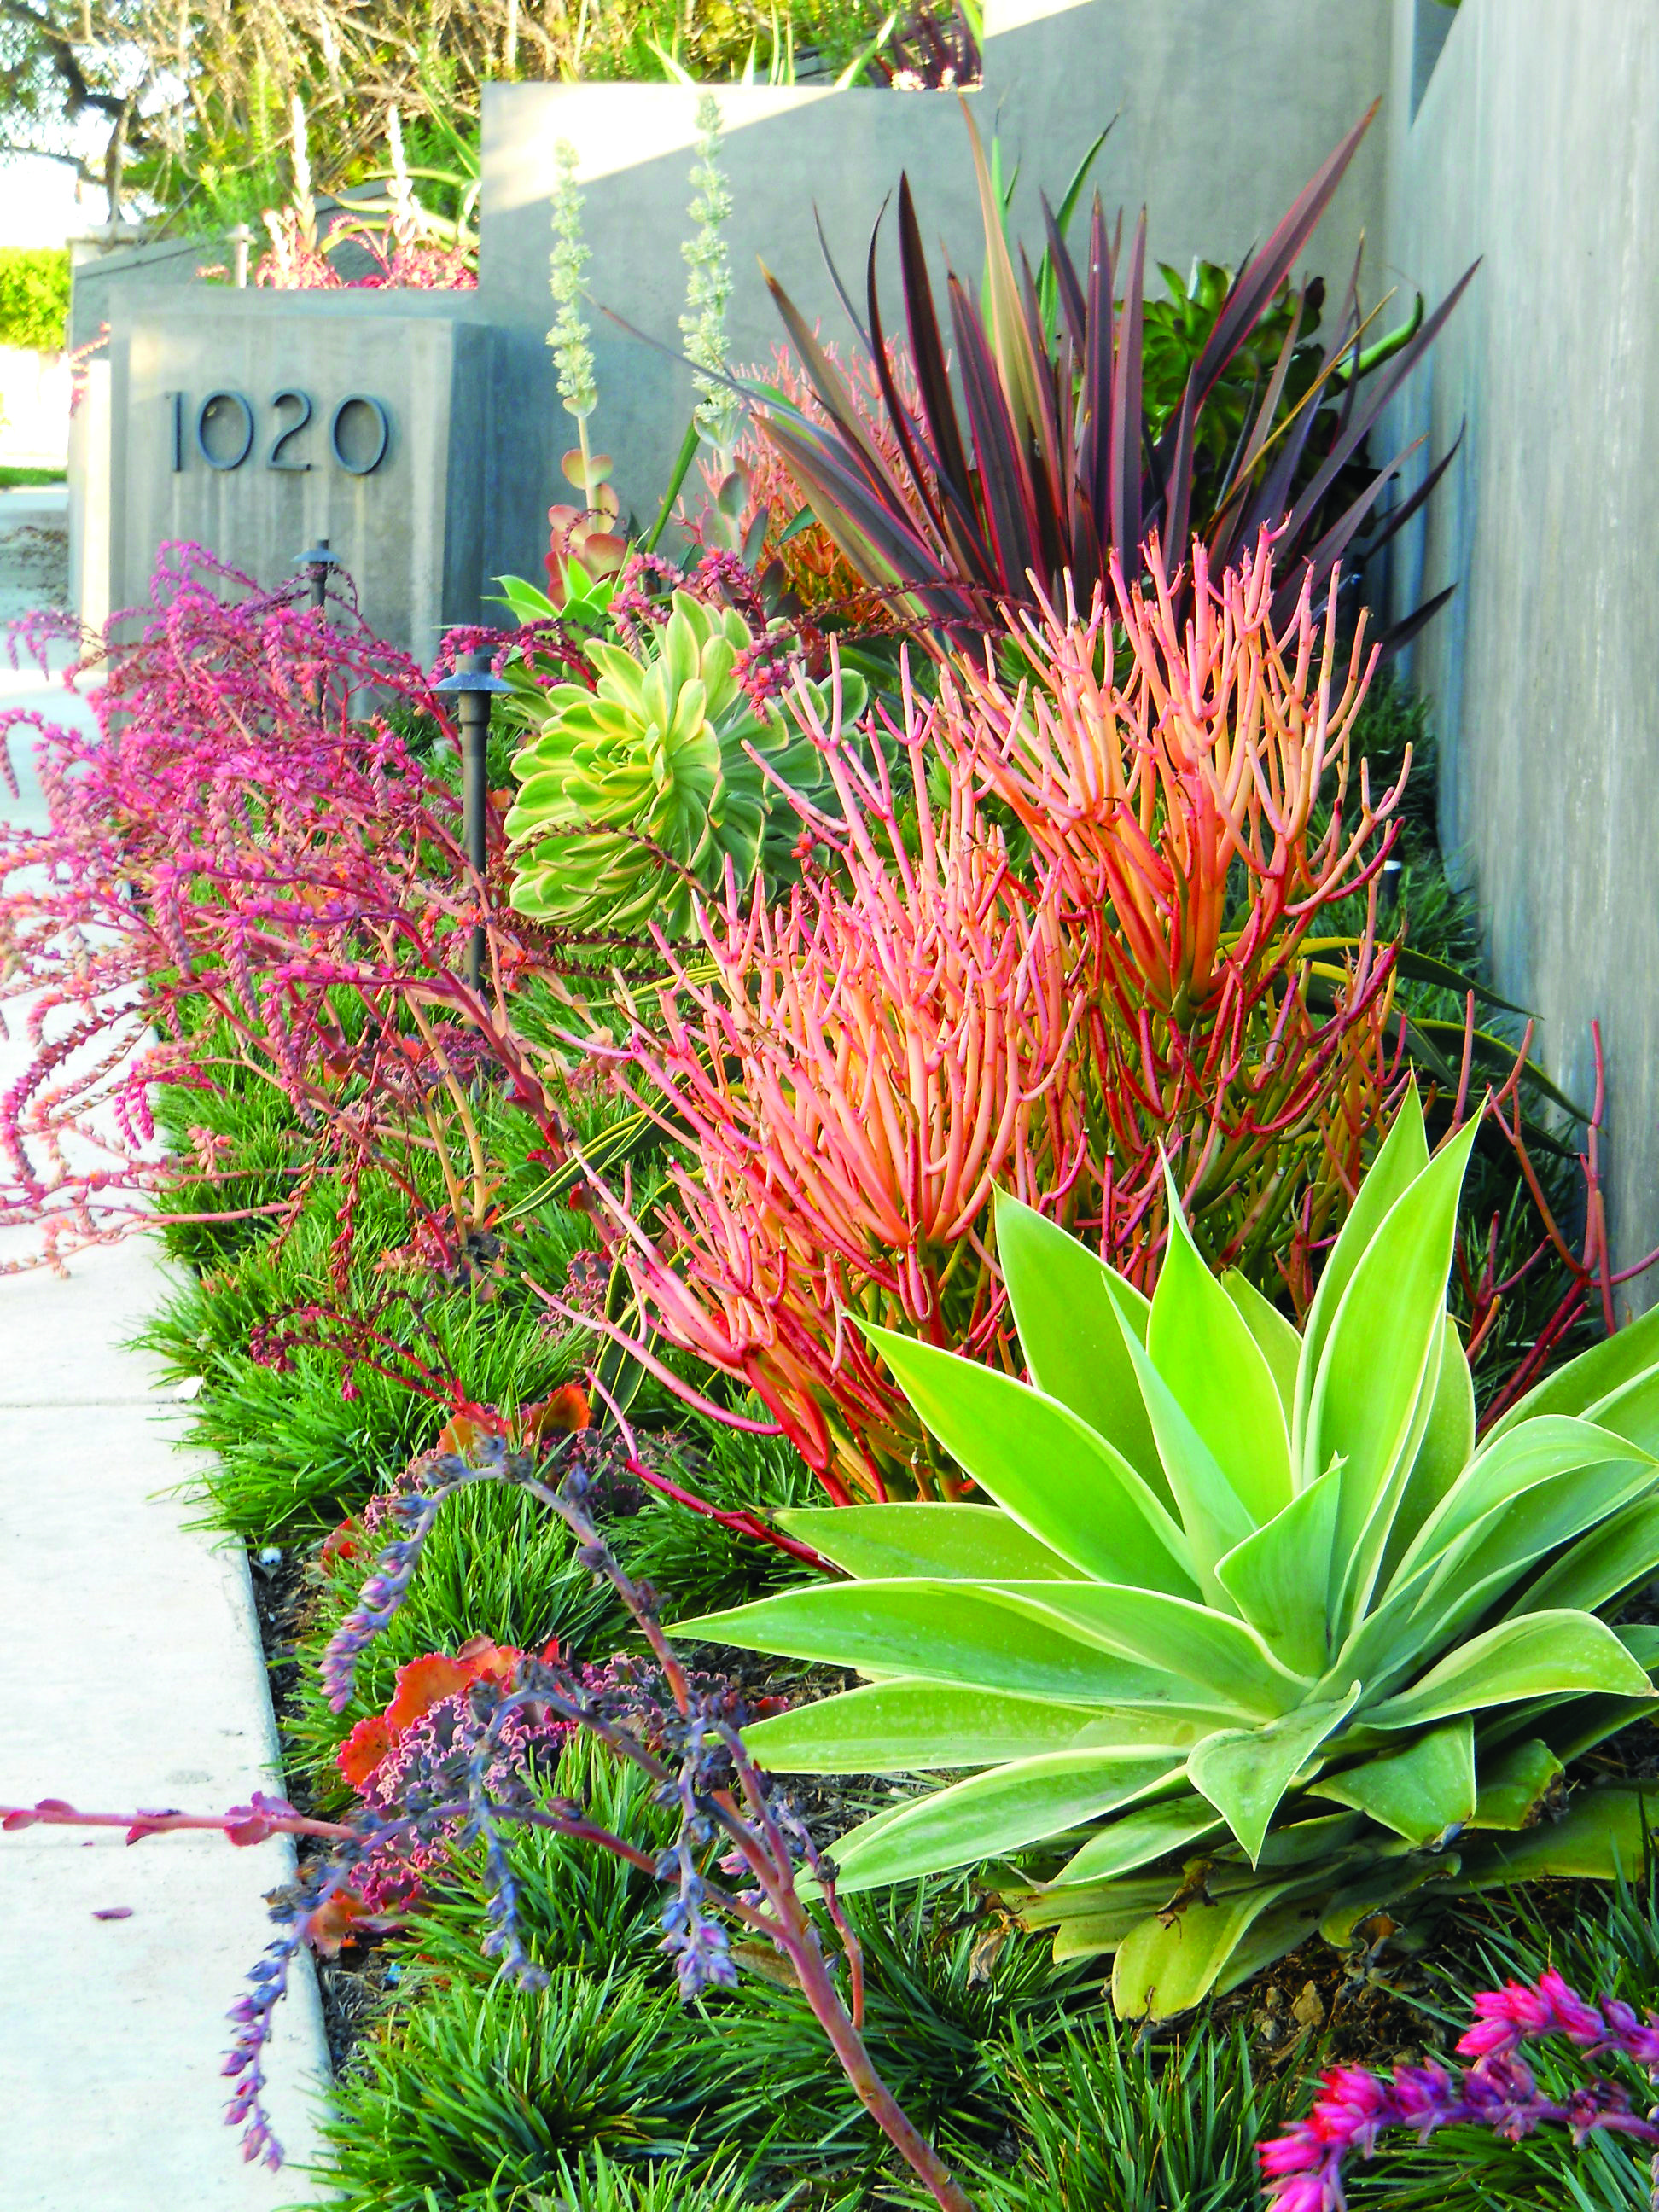 Contemporary Garden Patio Living Home Decor Gardens Plants Flowers Diy Outdoor House Modern: Create A Drought-friendly Landscape. (Originally Featured On A California-Friendly Landsca